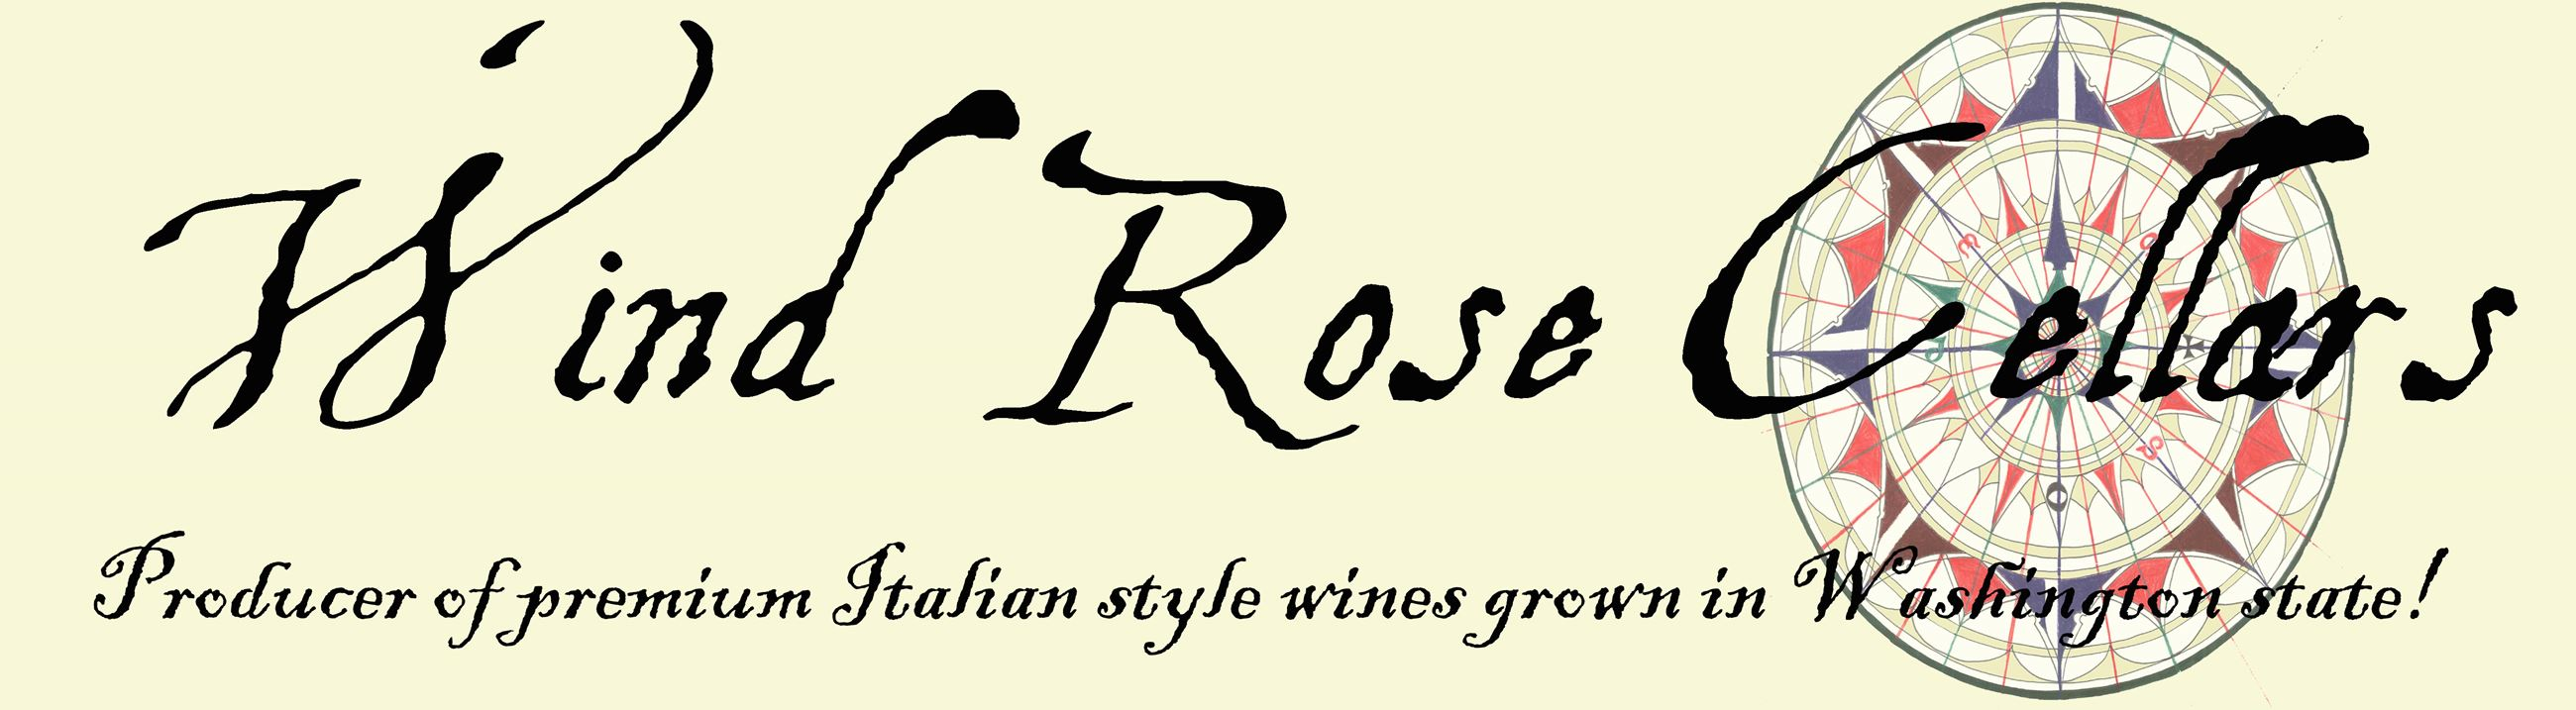 Wind Rose Cellars logo